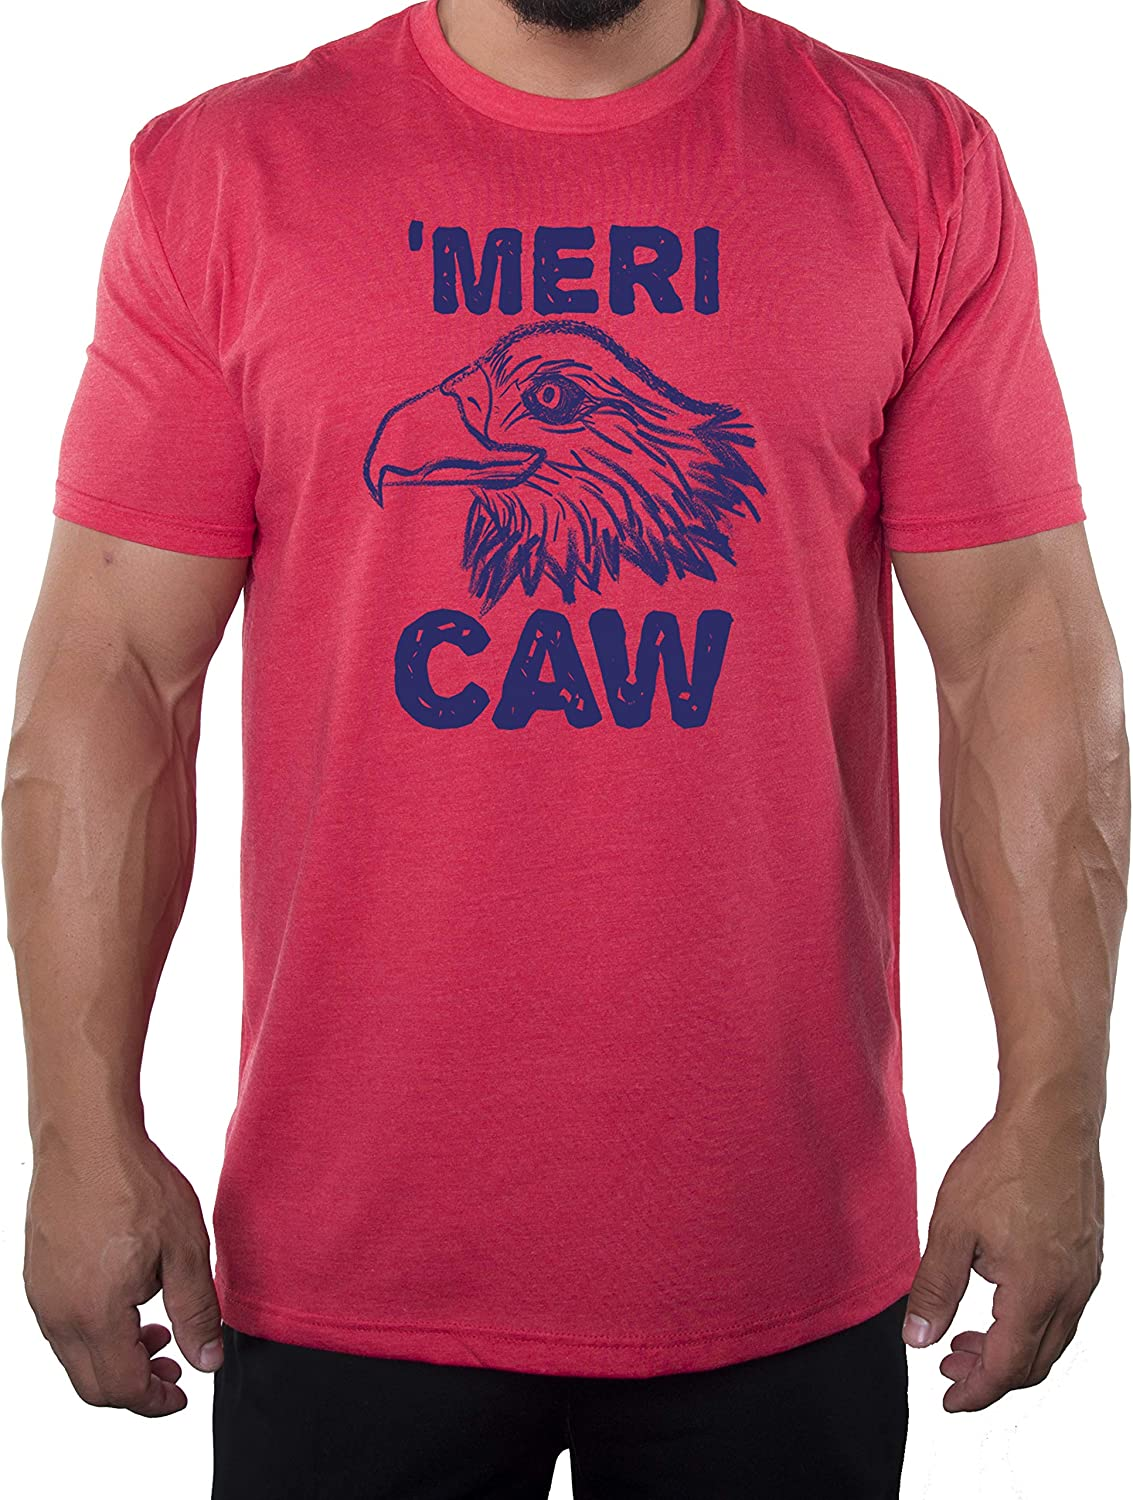 Mato & Hash MeriCAW Men's Patriotic T-Shirts, Funny 4th of July Shirts